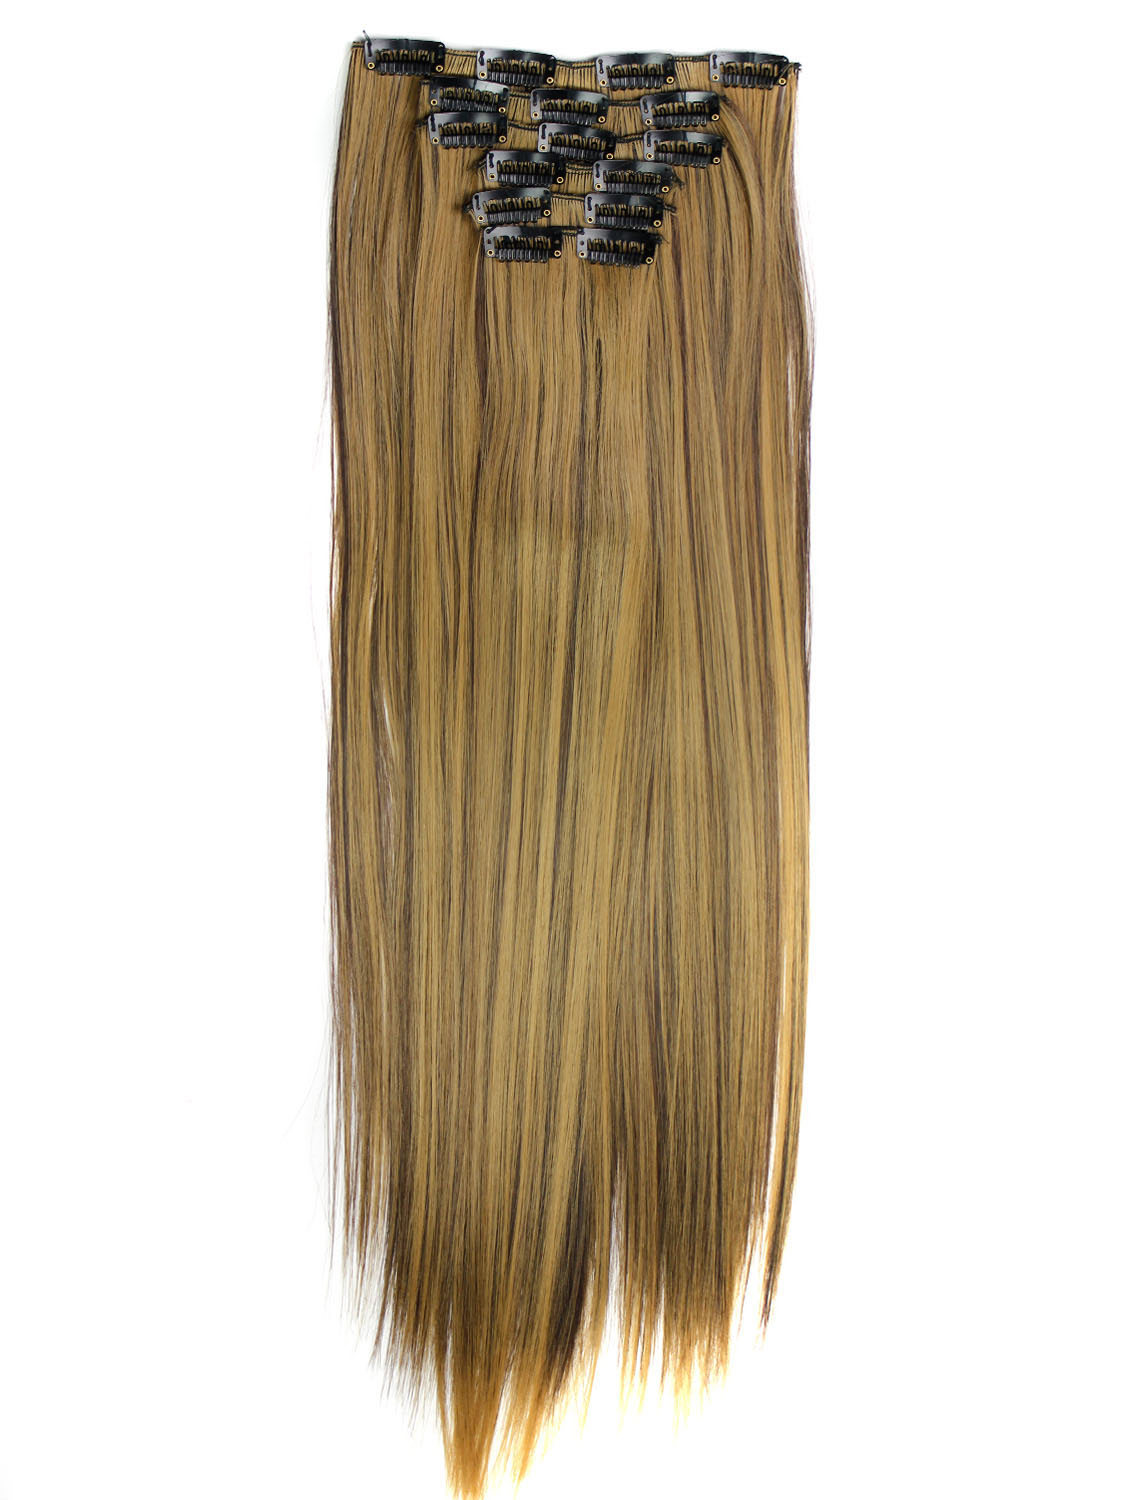 long Straight Stocking Cosplay Wig with Bang - edw4010